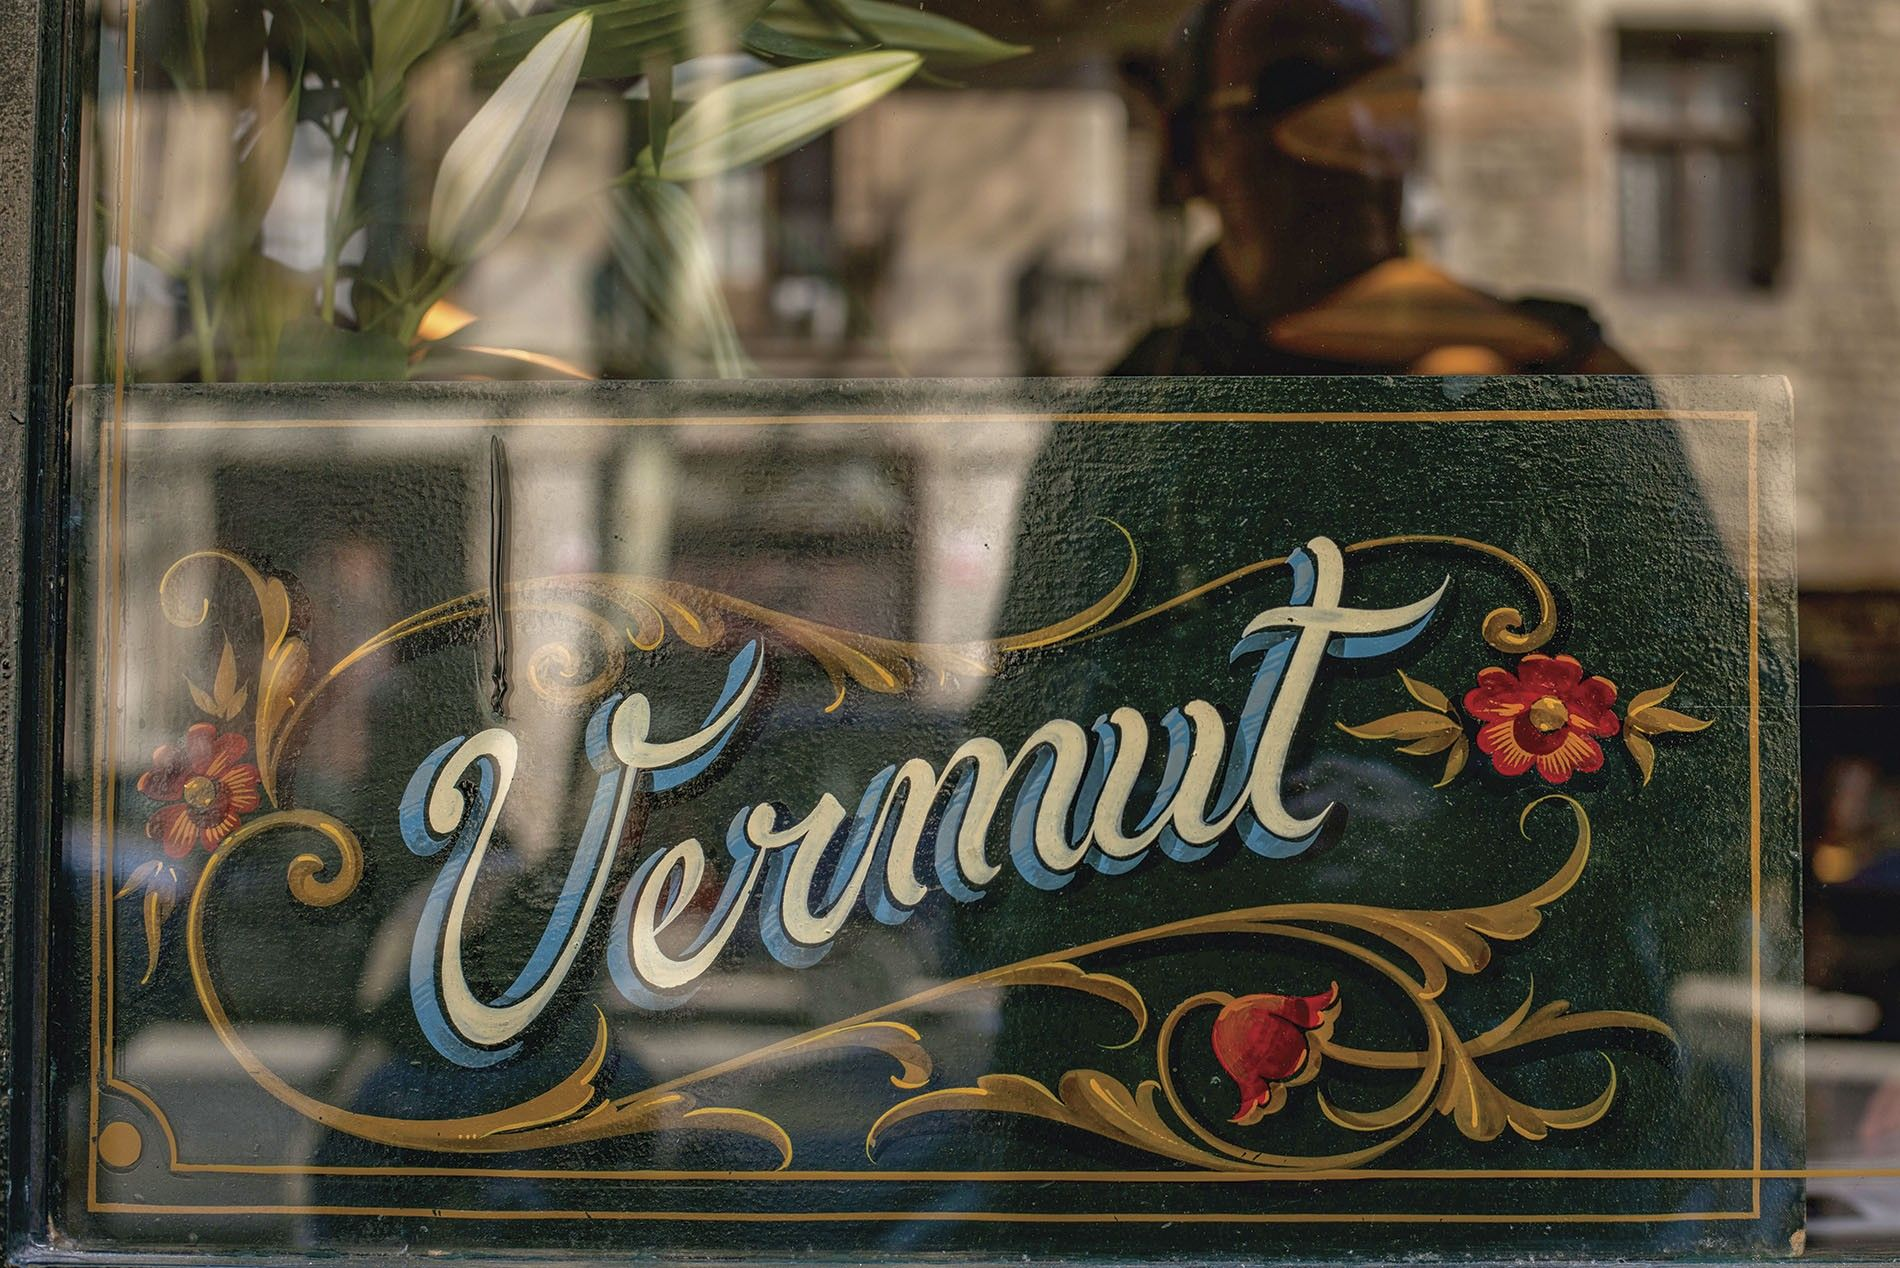 Why is everyone suddenly drinking vermouth?